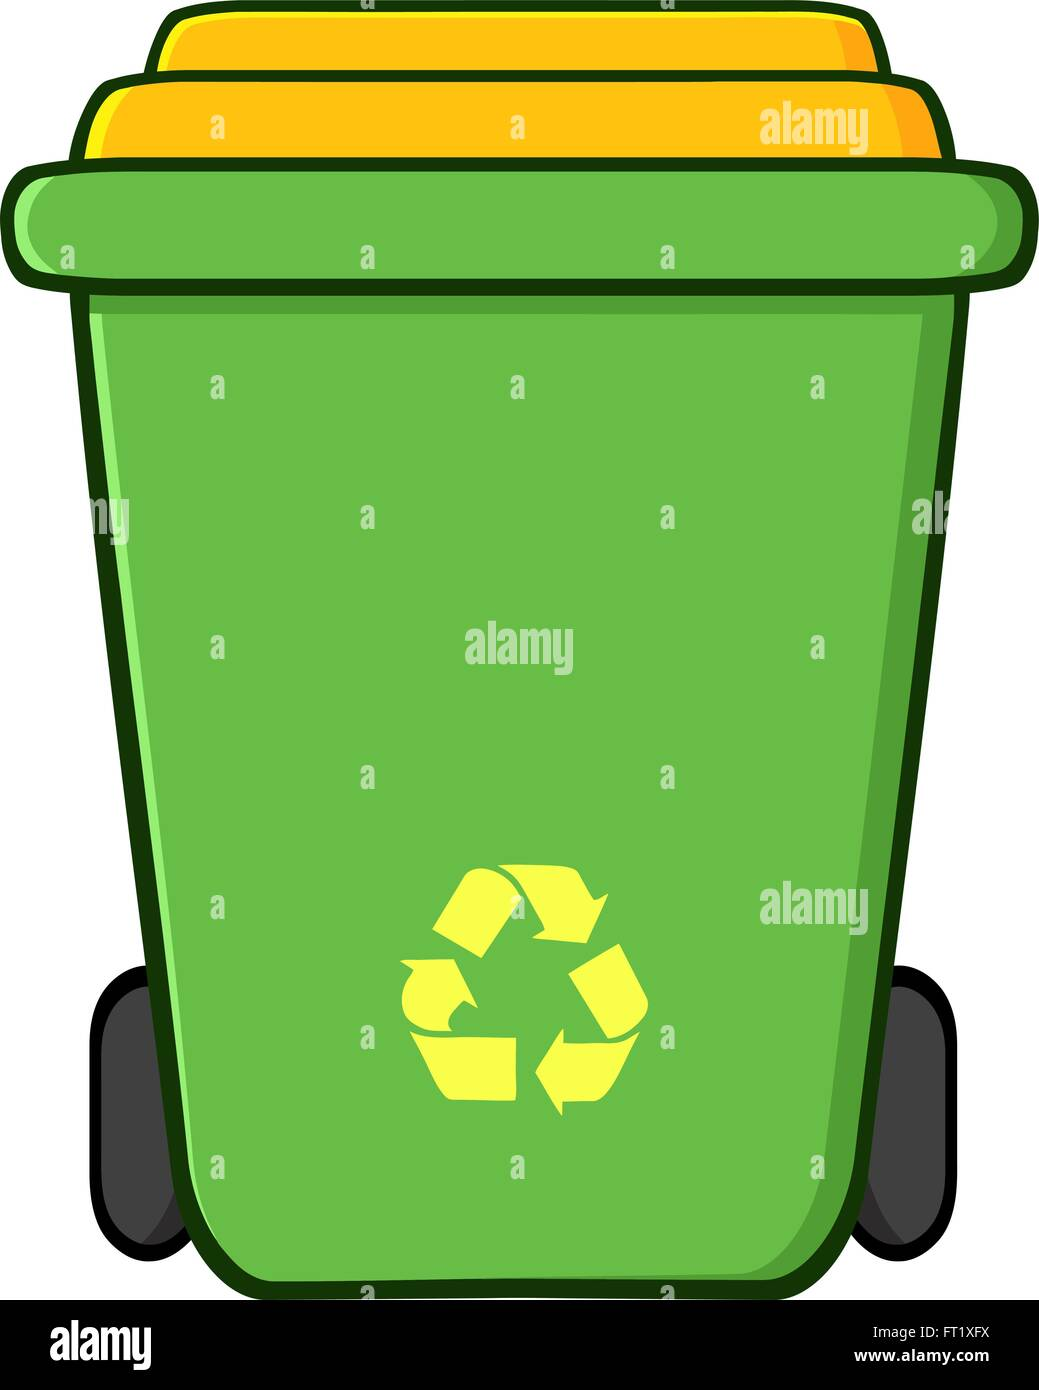 Outdoor Trash Can Stock Vector Images - Alamy